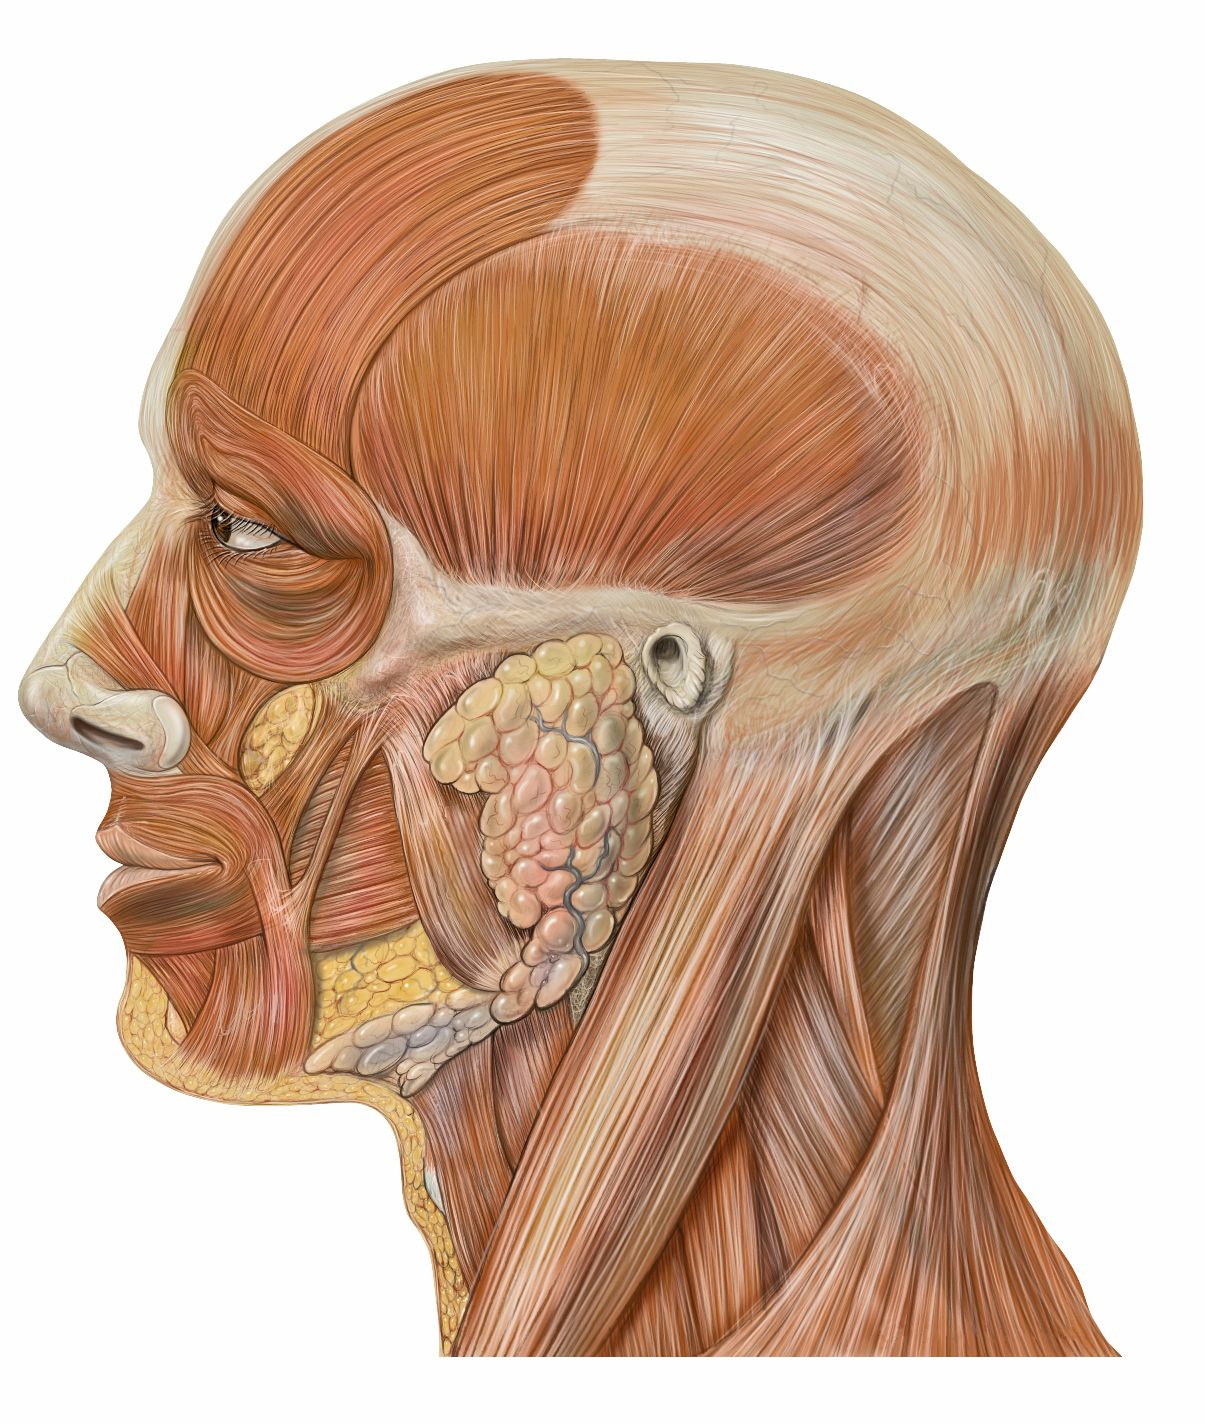 women's anatomy muscles face - google search | 3d model - topology, Muscles